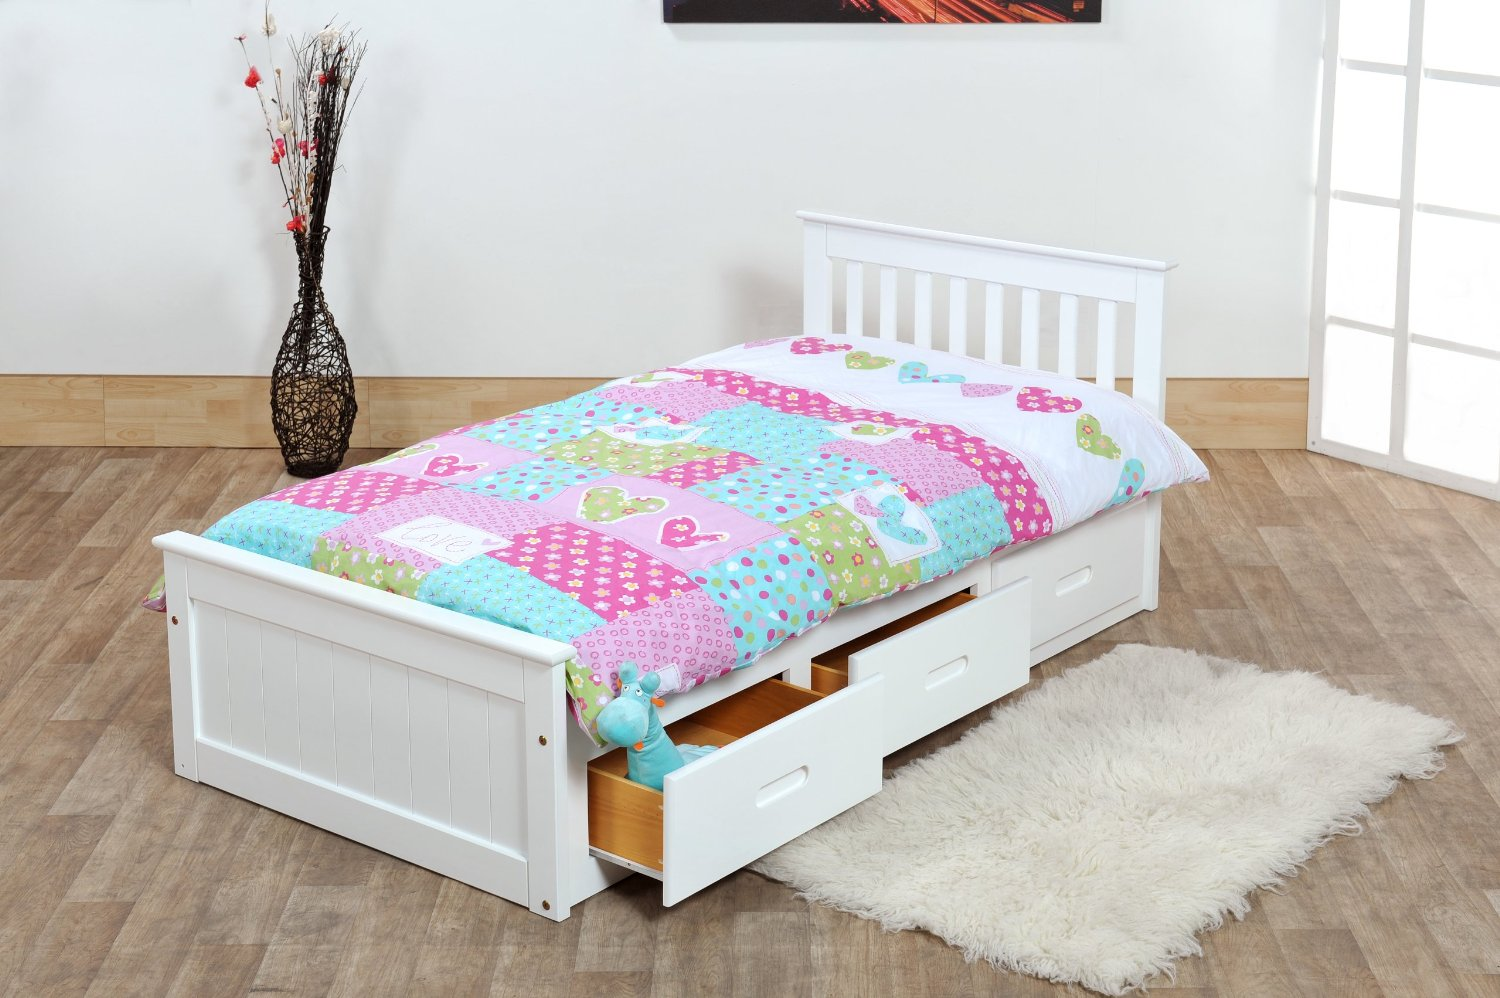 Colorful Duvet and White Kids Beds with Storage Placed in Wide Bedroom with Carpet Rug on Oak Flooring